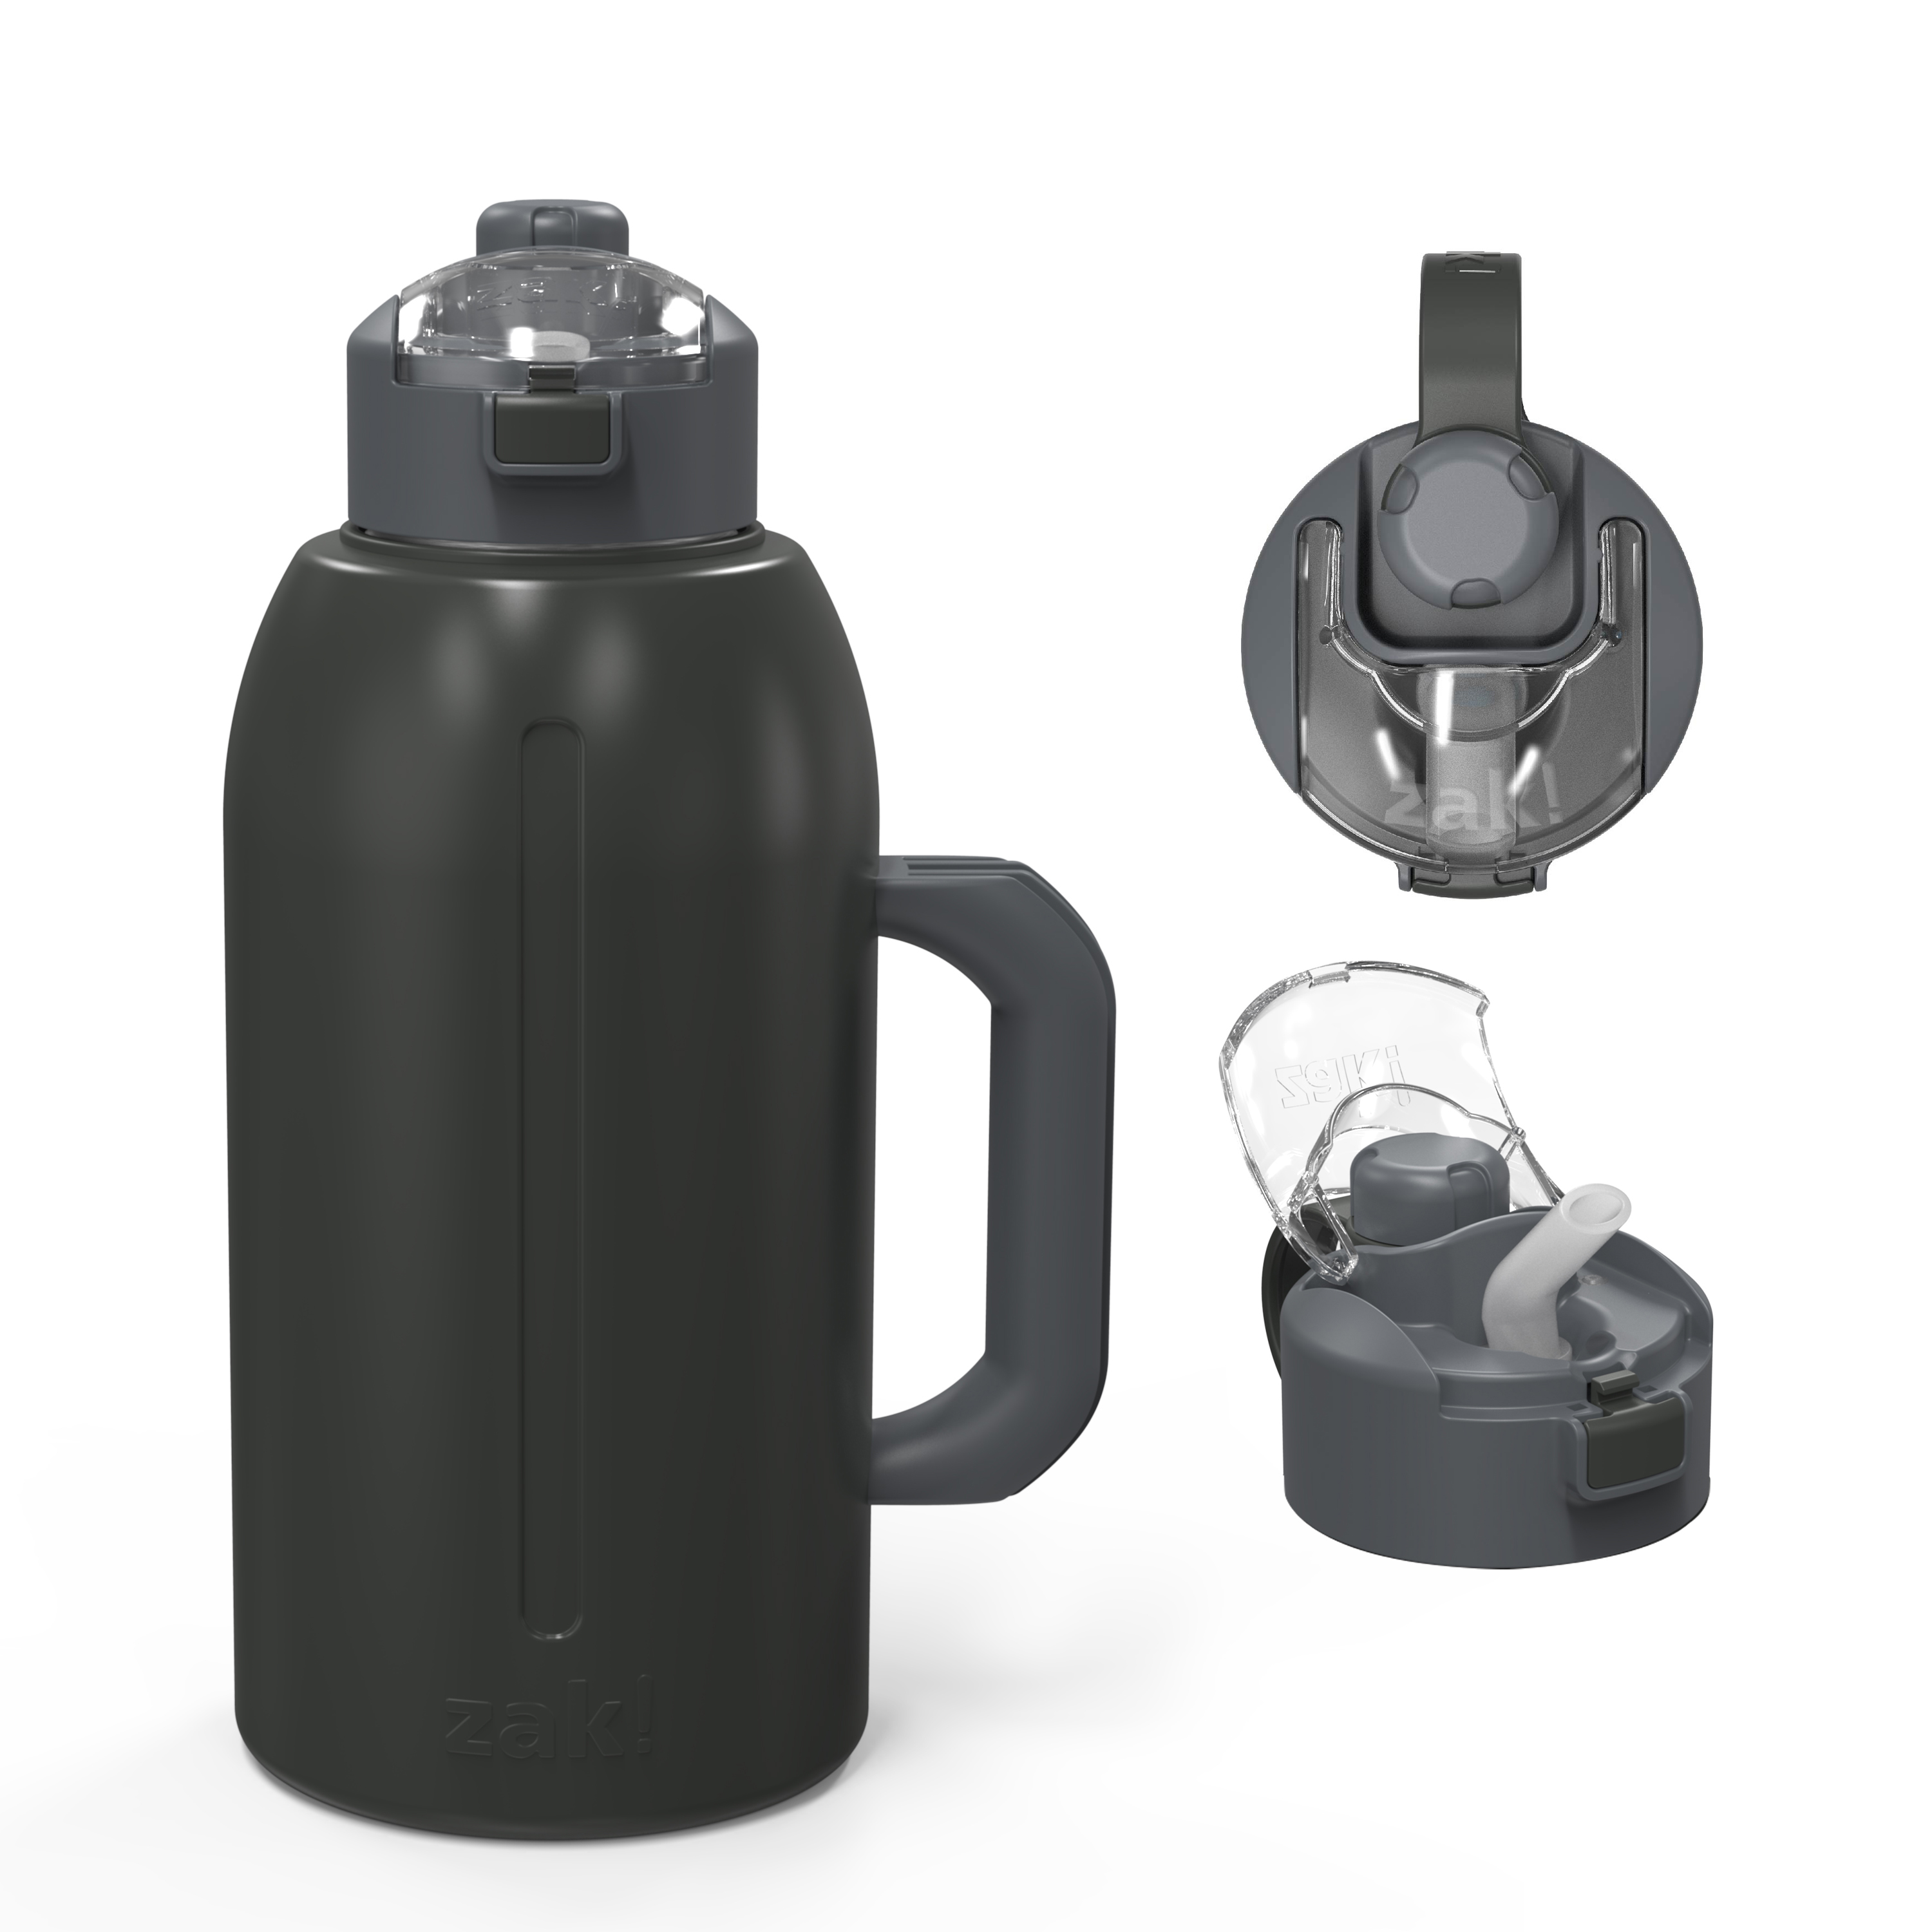 Genesis 64 ounce Vacuum Insulated Stainless Steel Tumbler, Charcoal slideshow image 1